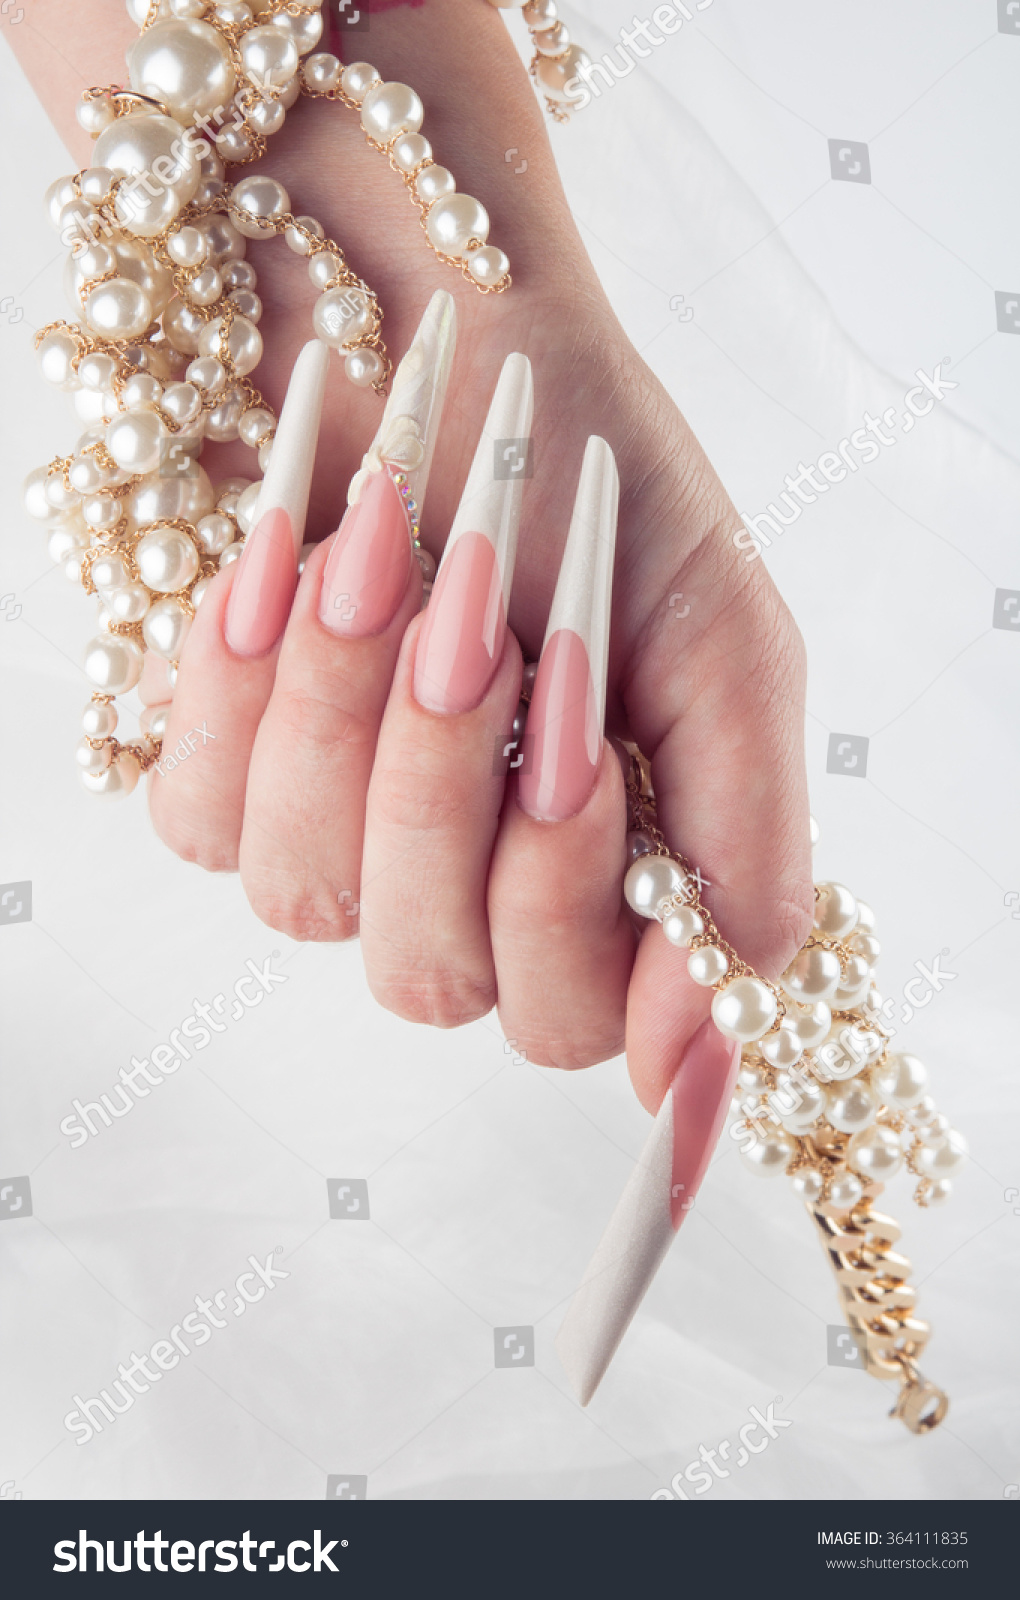 Painted Simple Extreme Long Nails Hands Stock Photo & Image (Royalty ...